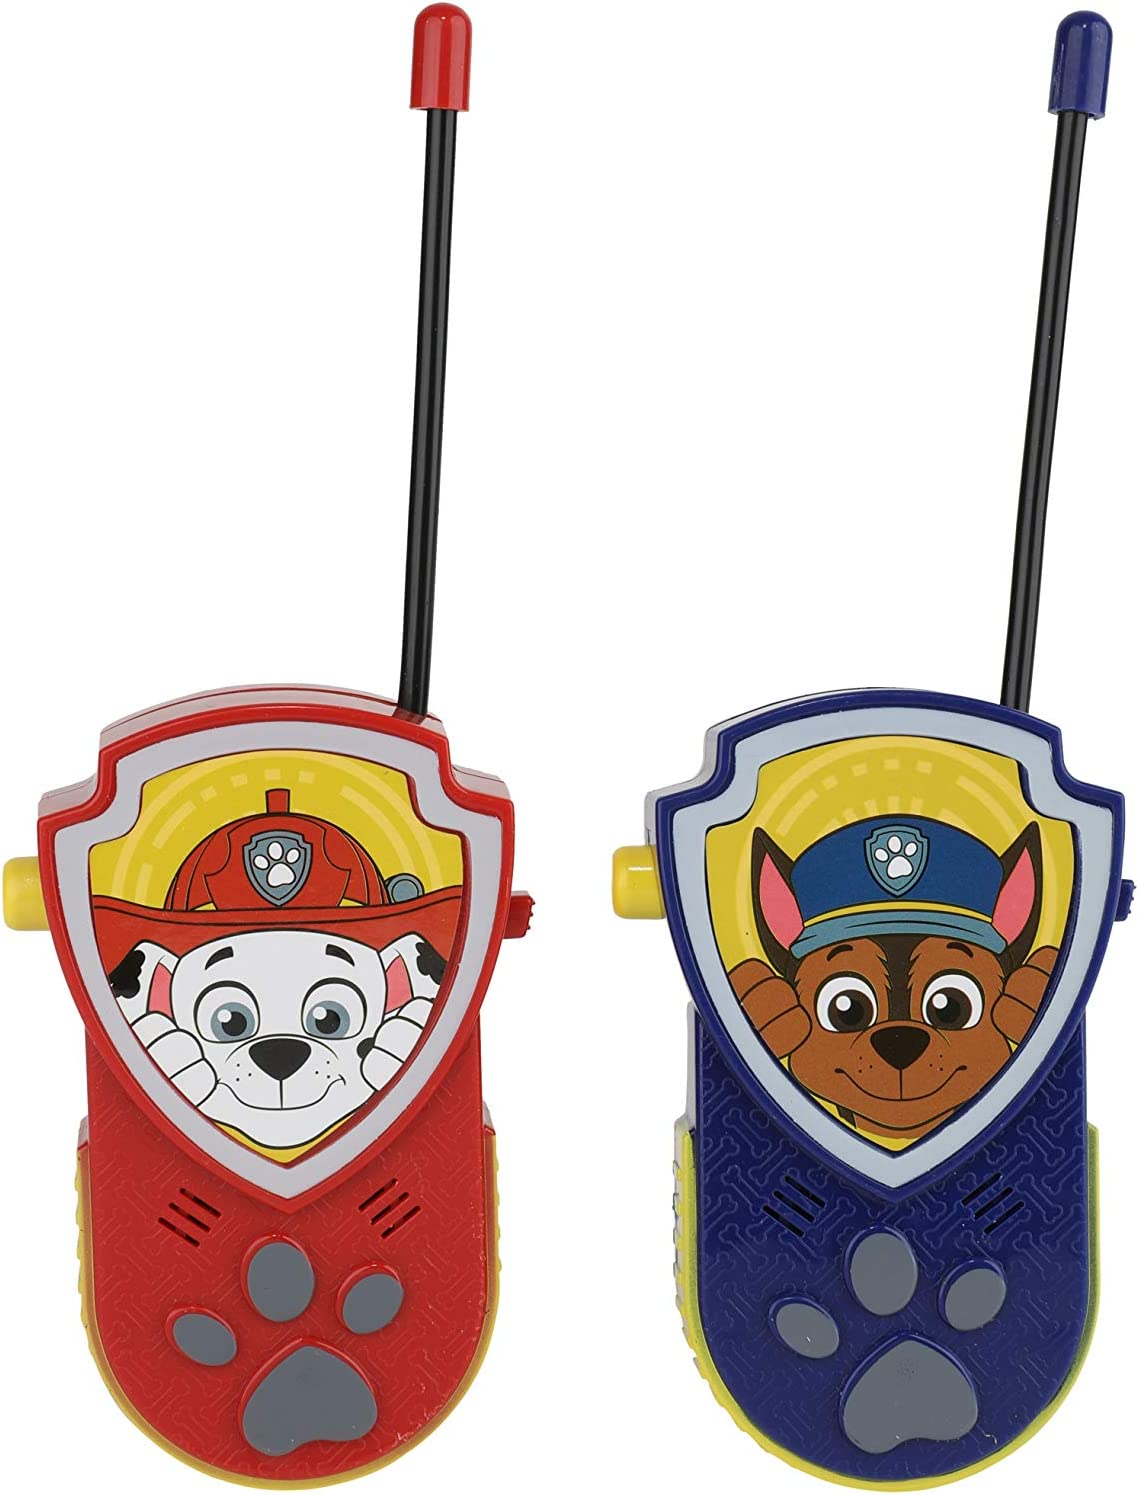 Wonder Woman Justic League Walkie Talkies for Indoor and Outdoor use Includes Belt Clip by Sakar 1000 Feet Range